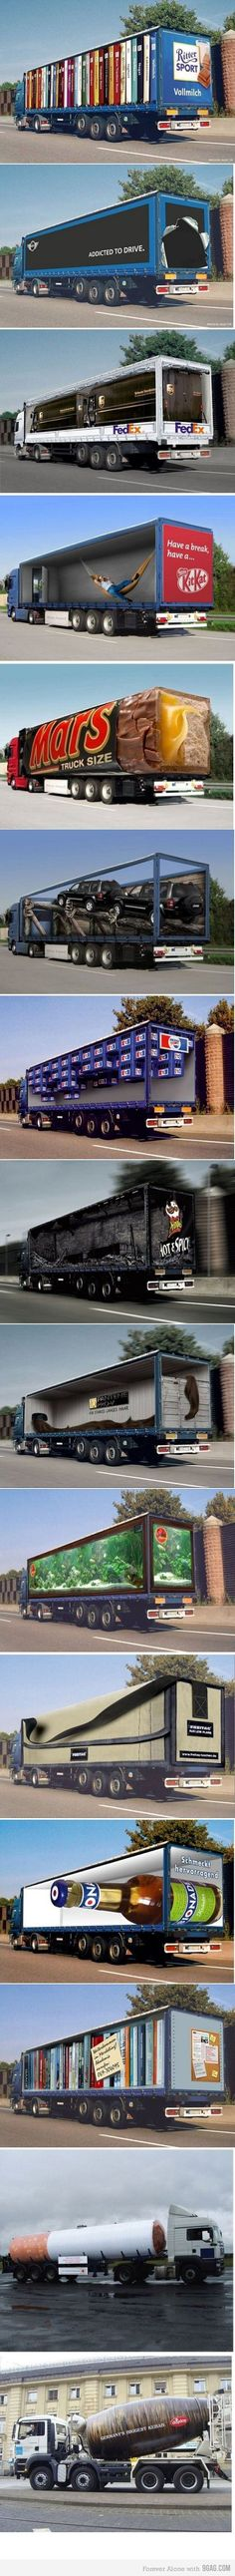 222 Awesome Advertising Ideas From Around the World Guerilla Marketing Photo